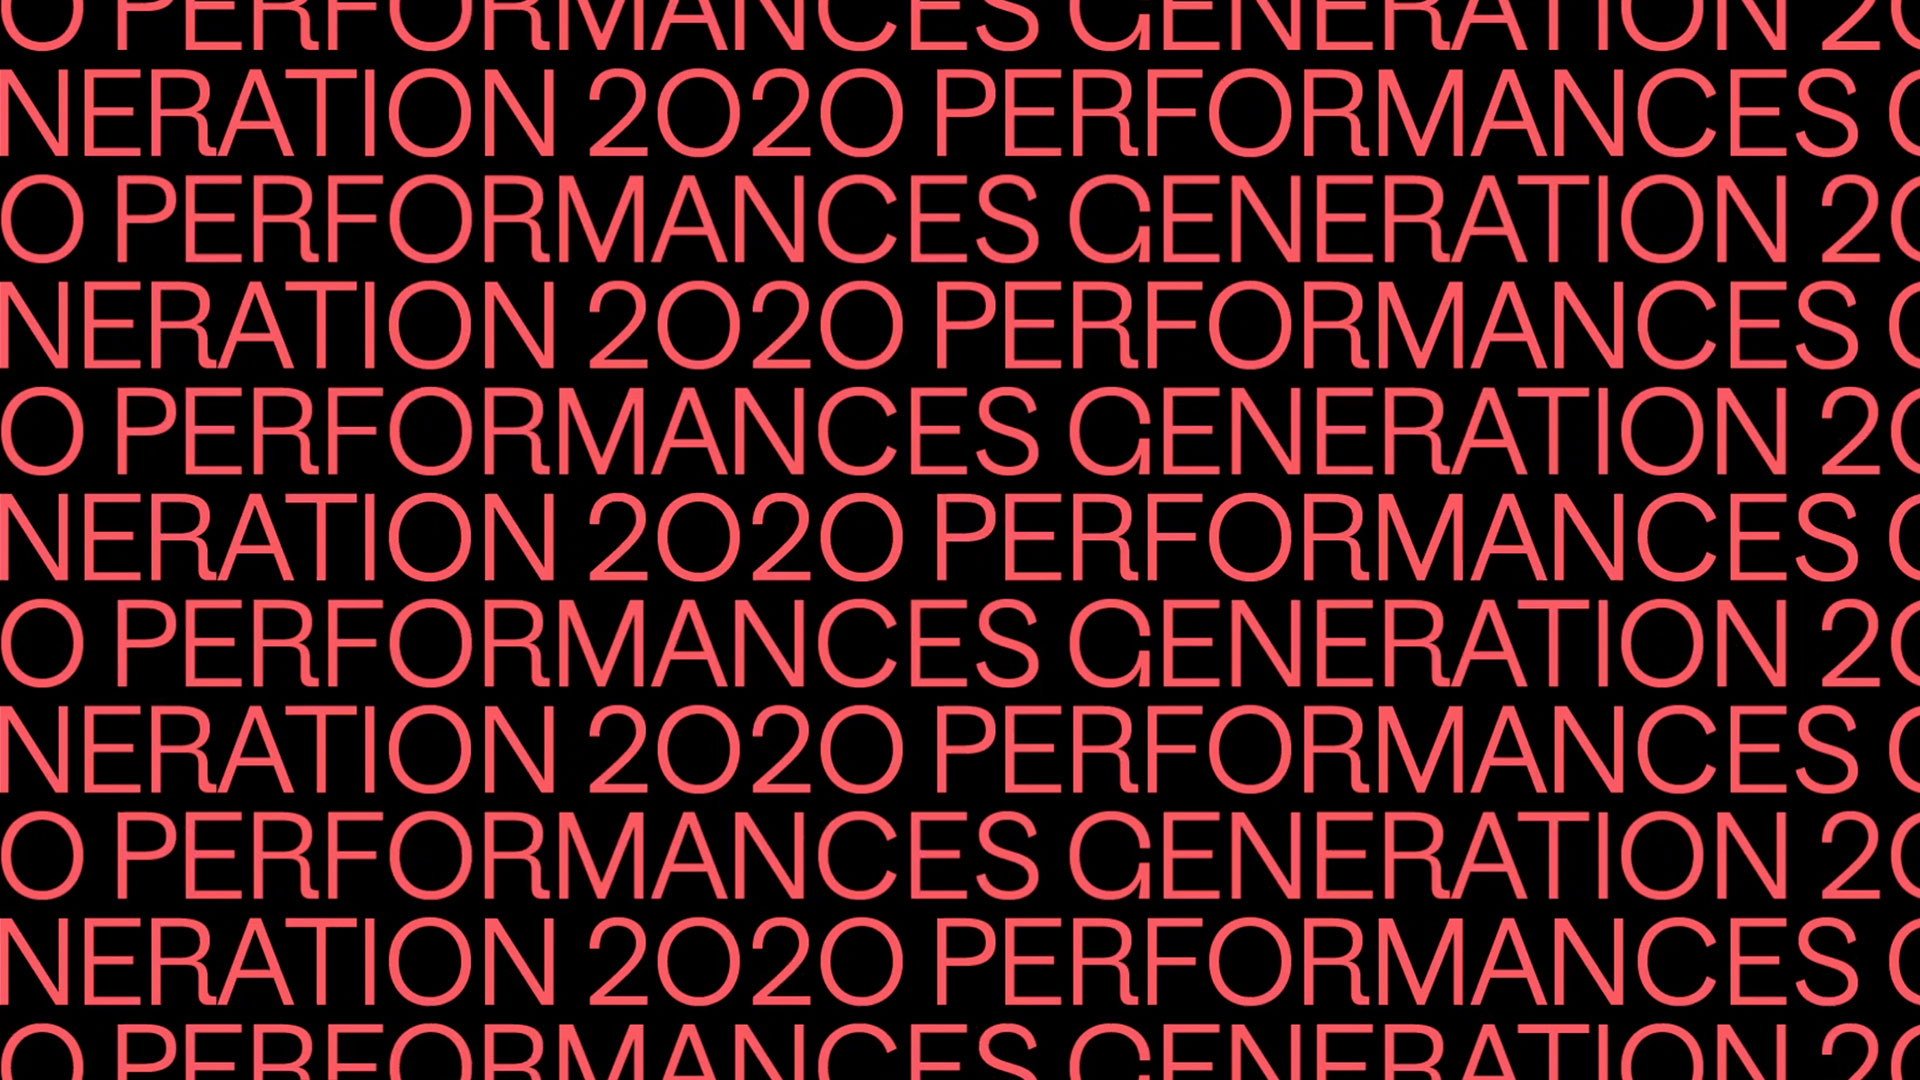 Link to event Generation 2020 Performances